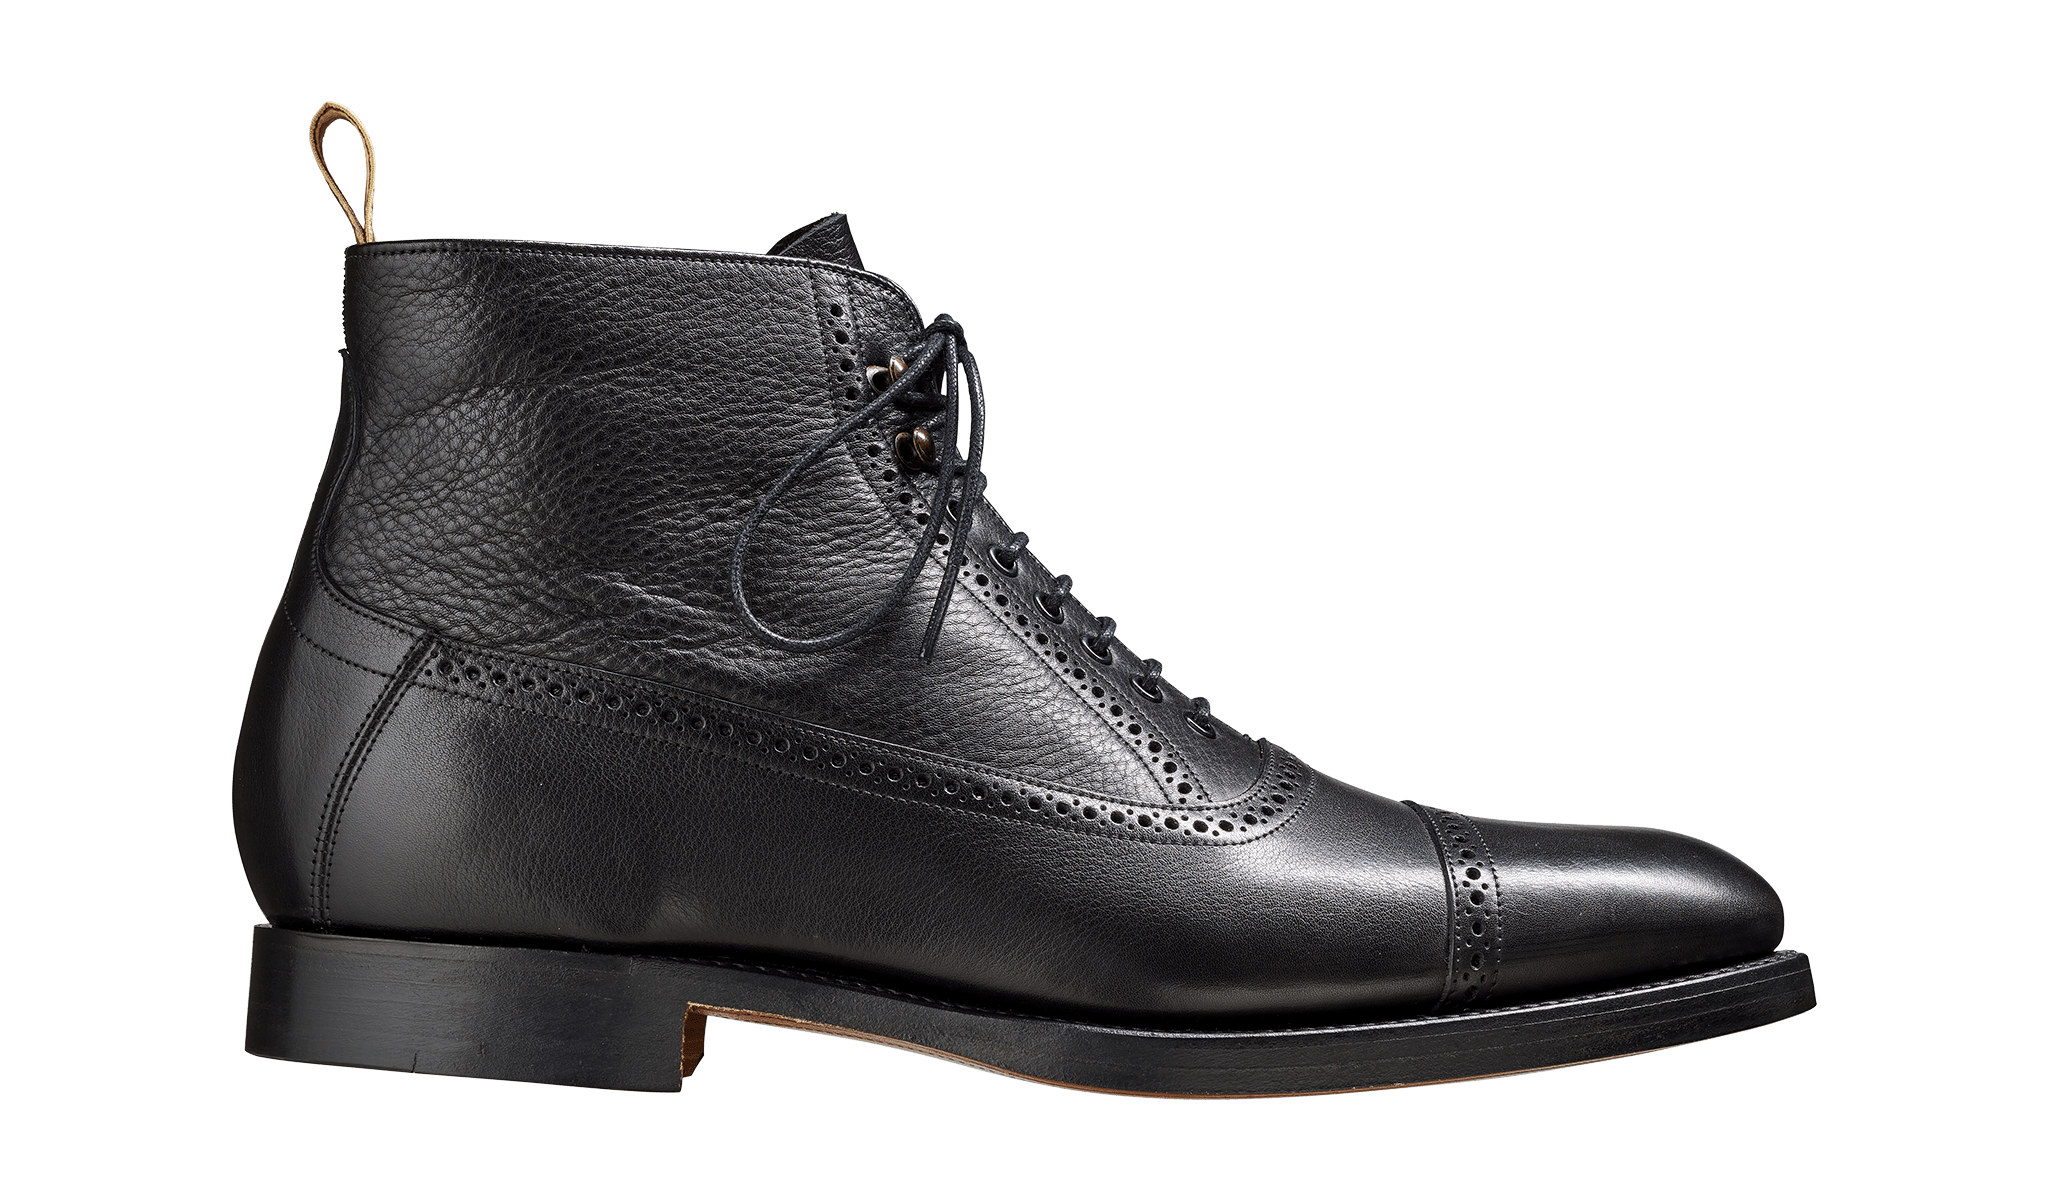 Barker Men's Foley Leather Brogue Boots 4503